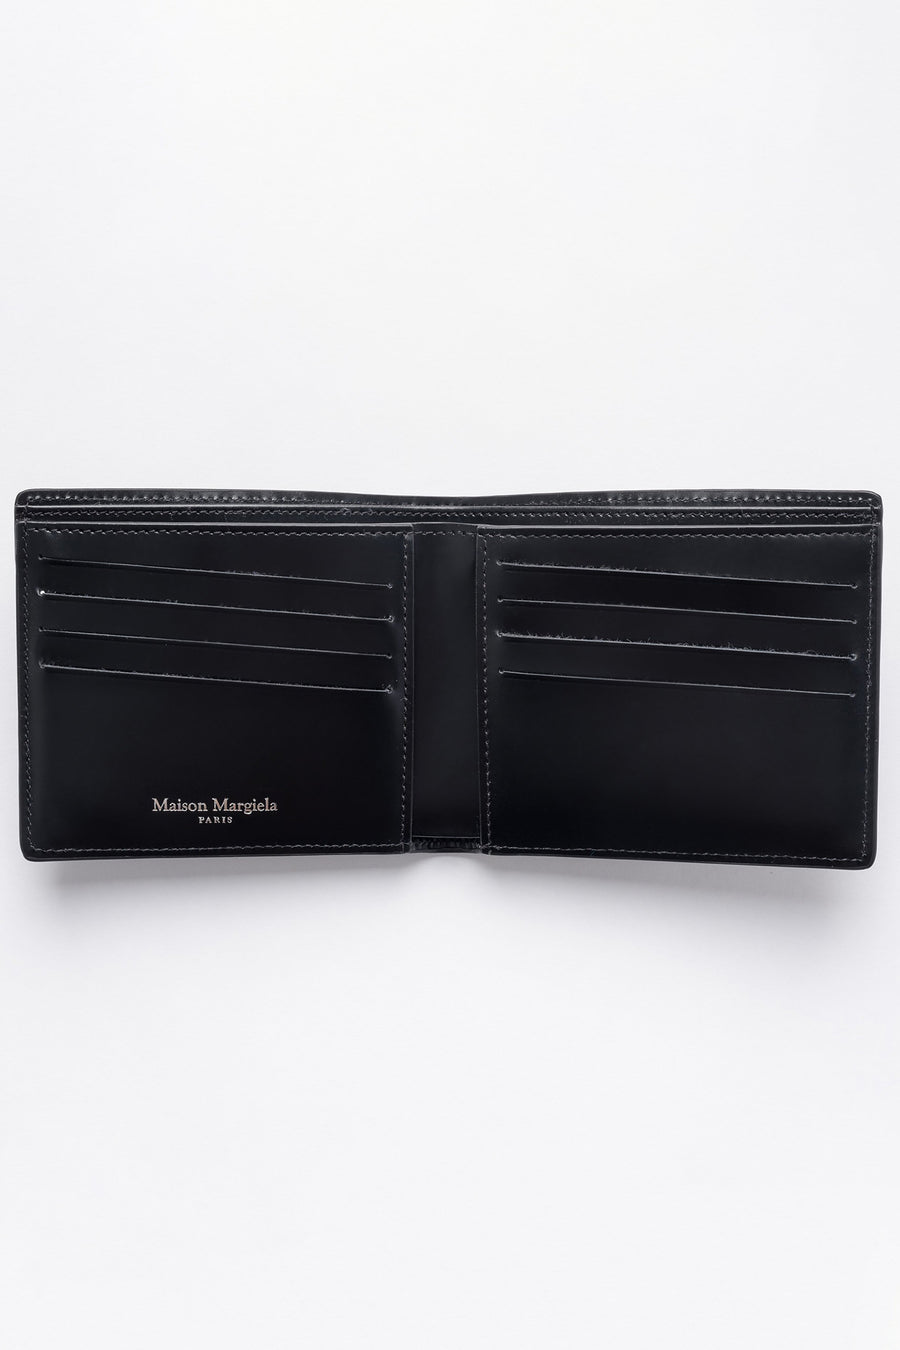 Maison Margiela Crocodile Embossed Leather Folding Wallet in Black - Notre